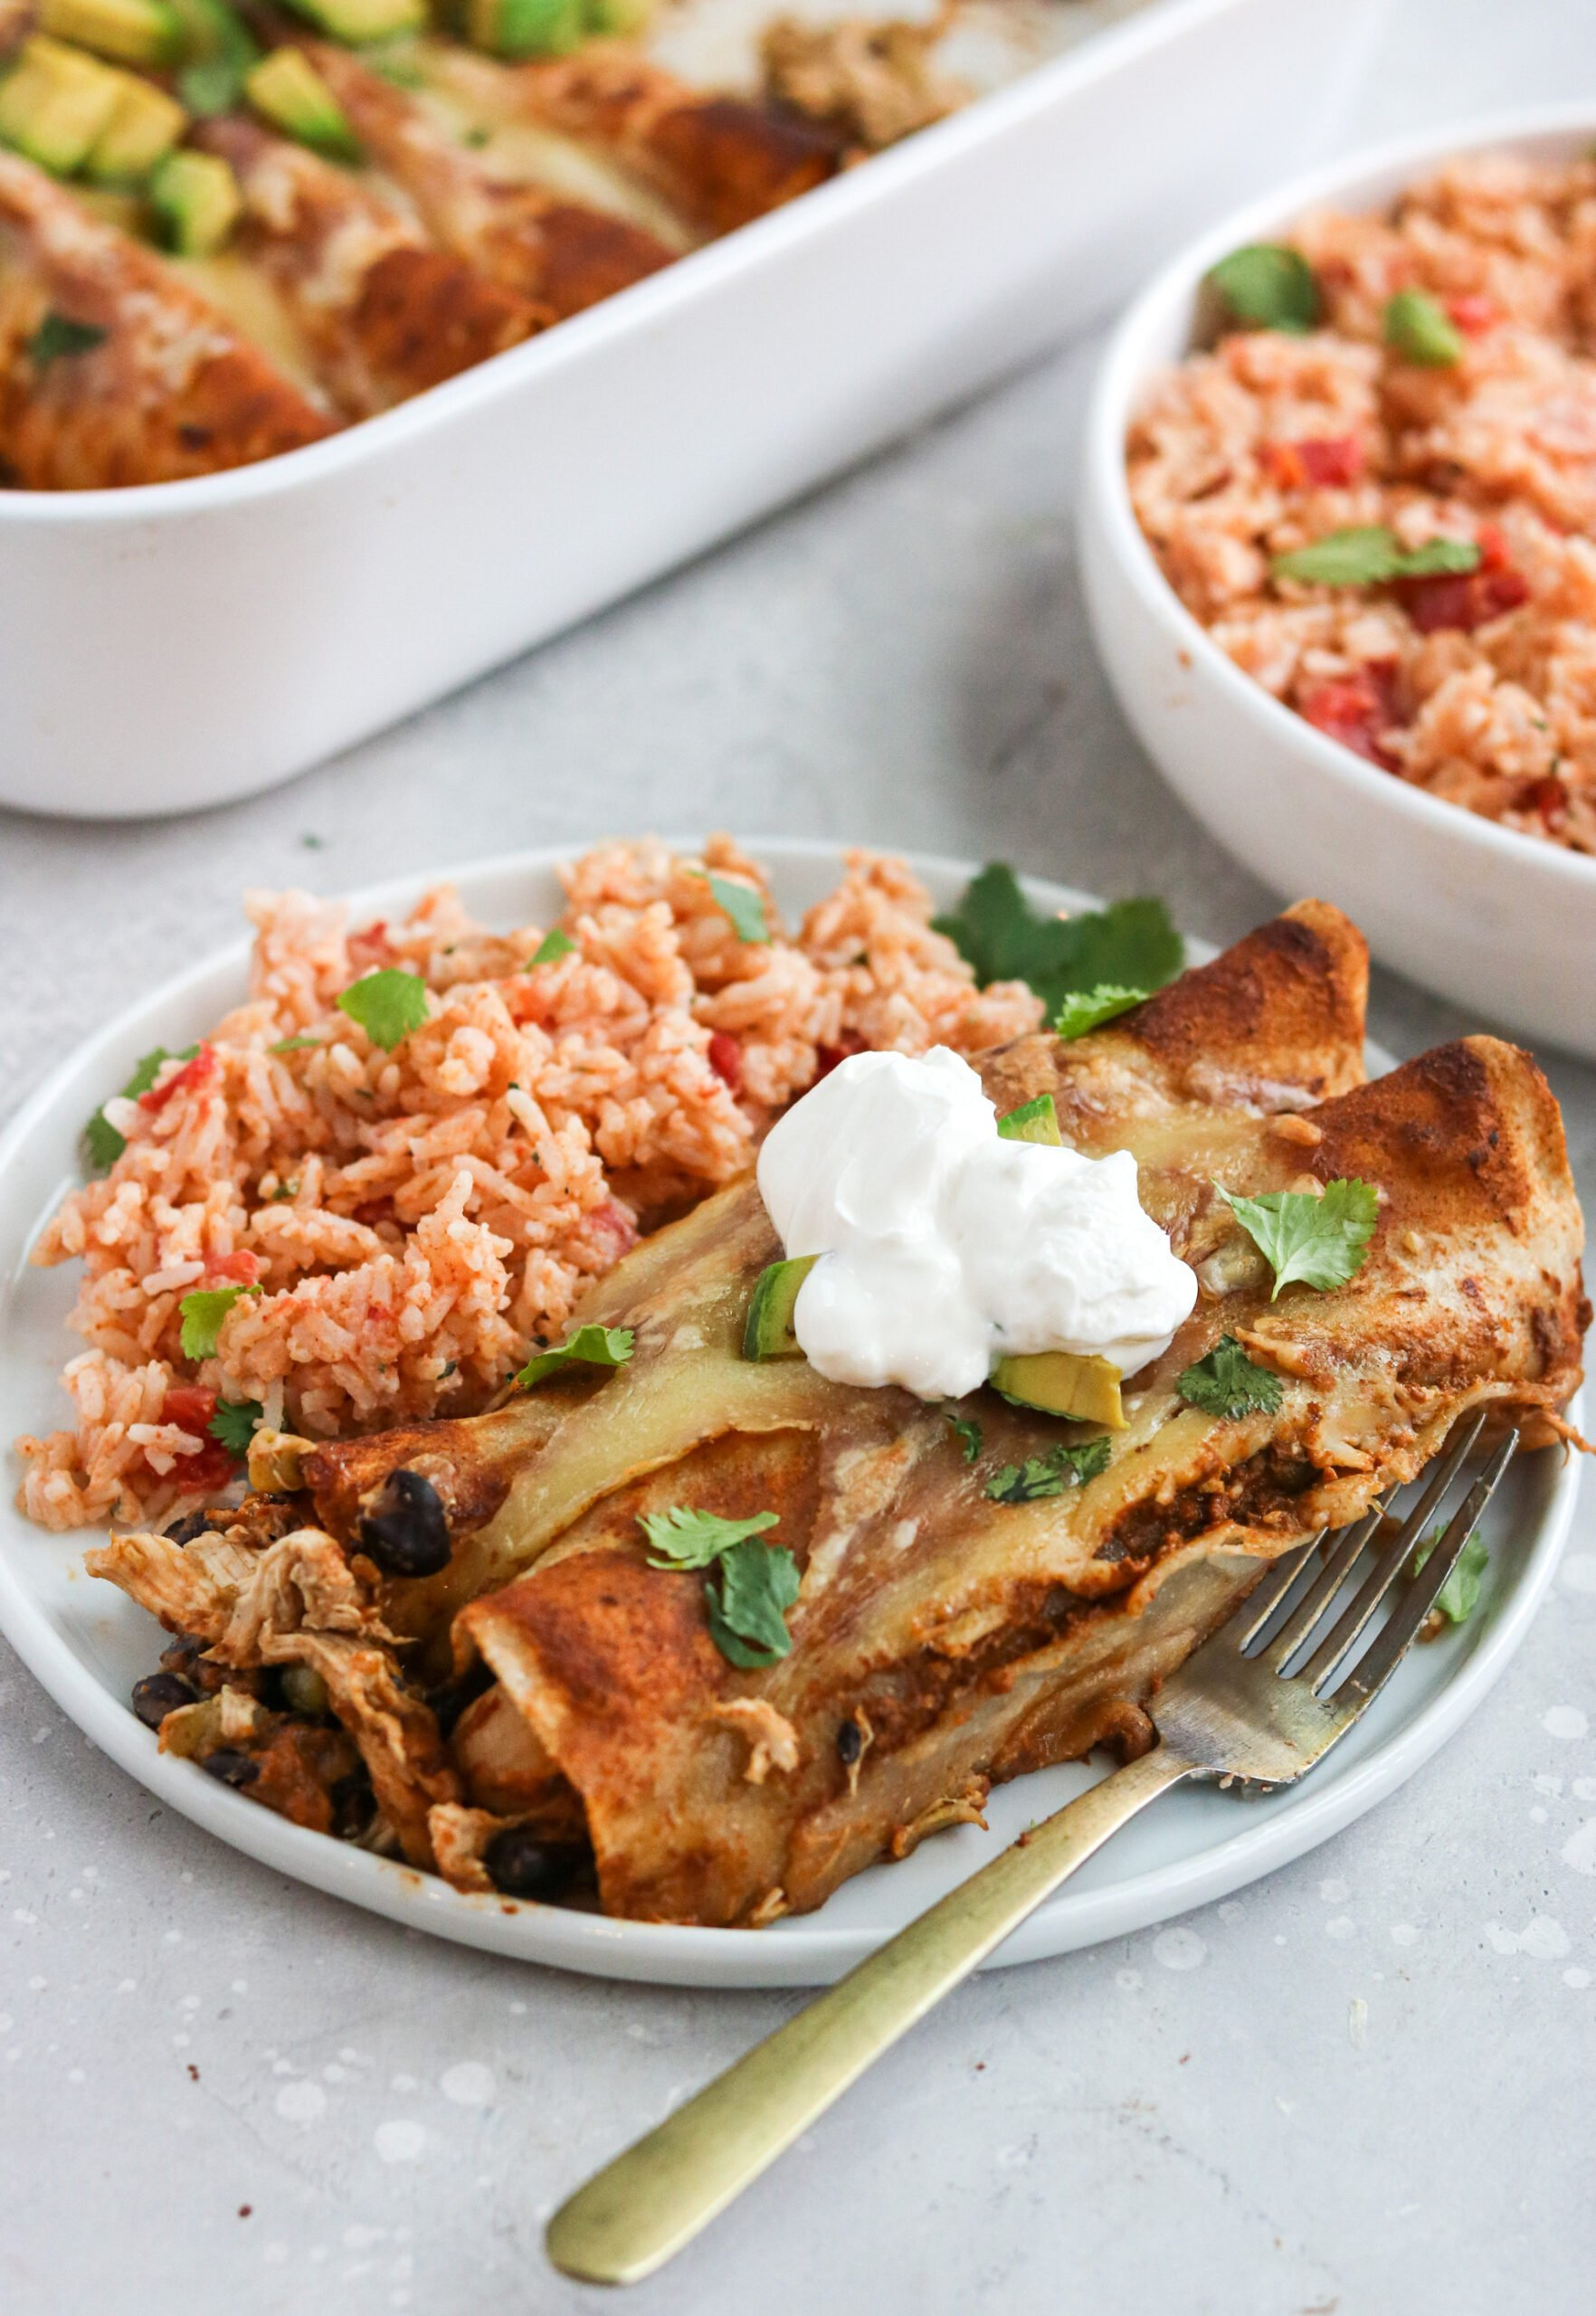 Grain free enchiladas in white plate with fork